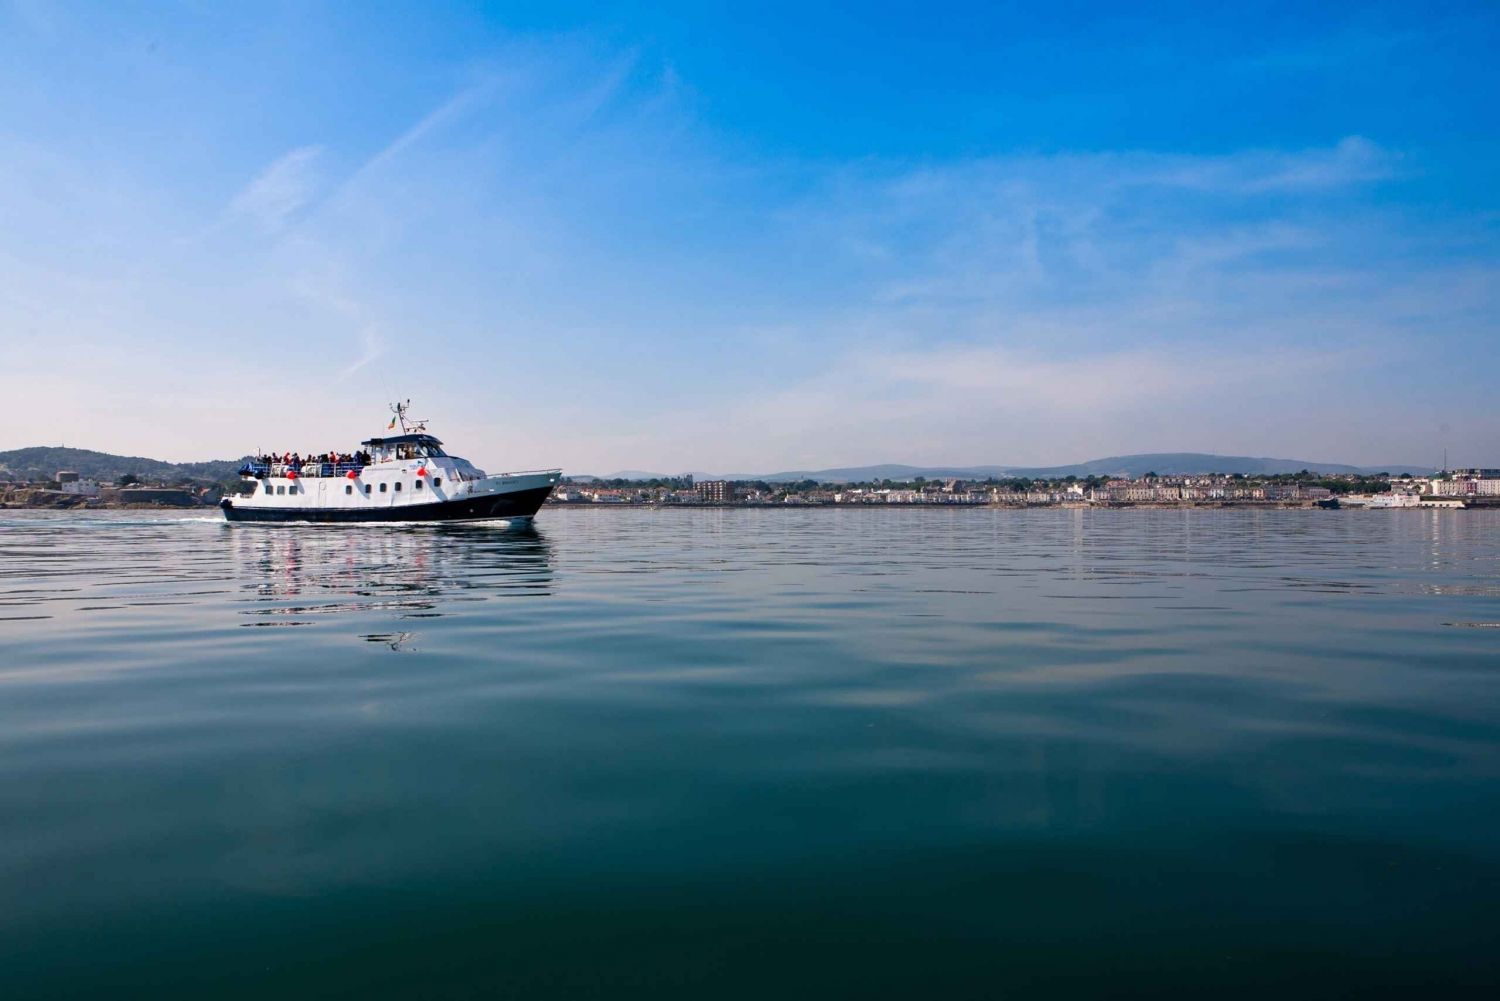 Dublin Bay: Cruise from the City Centre to Dun Laoghaire